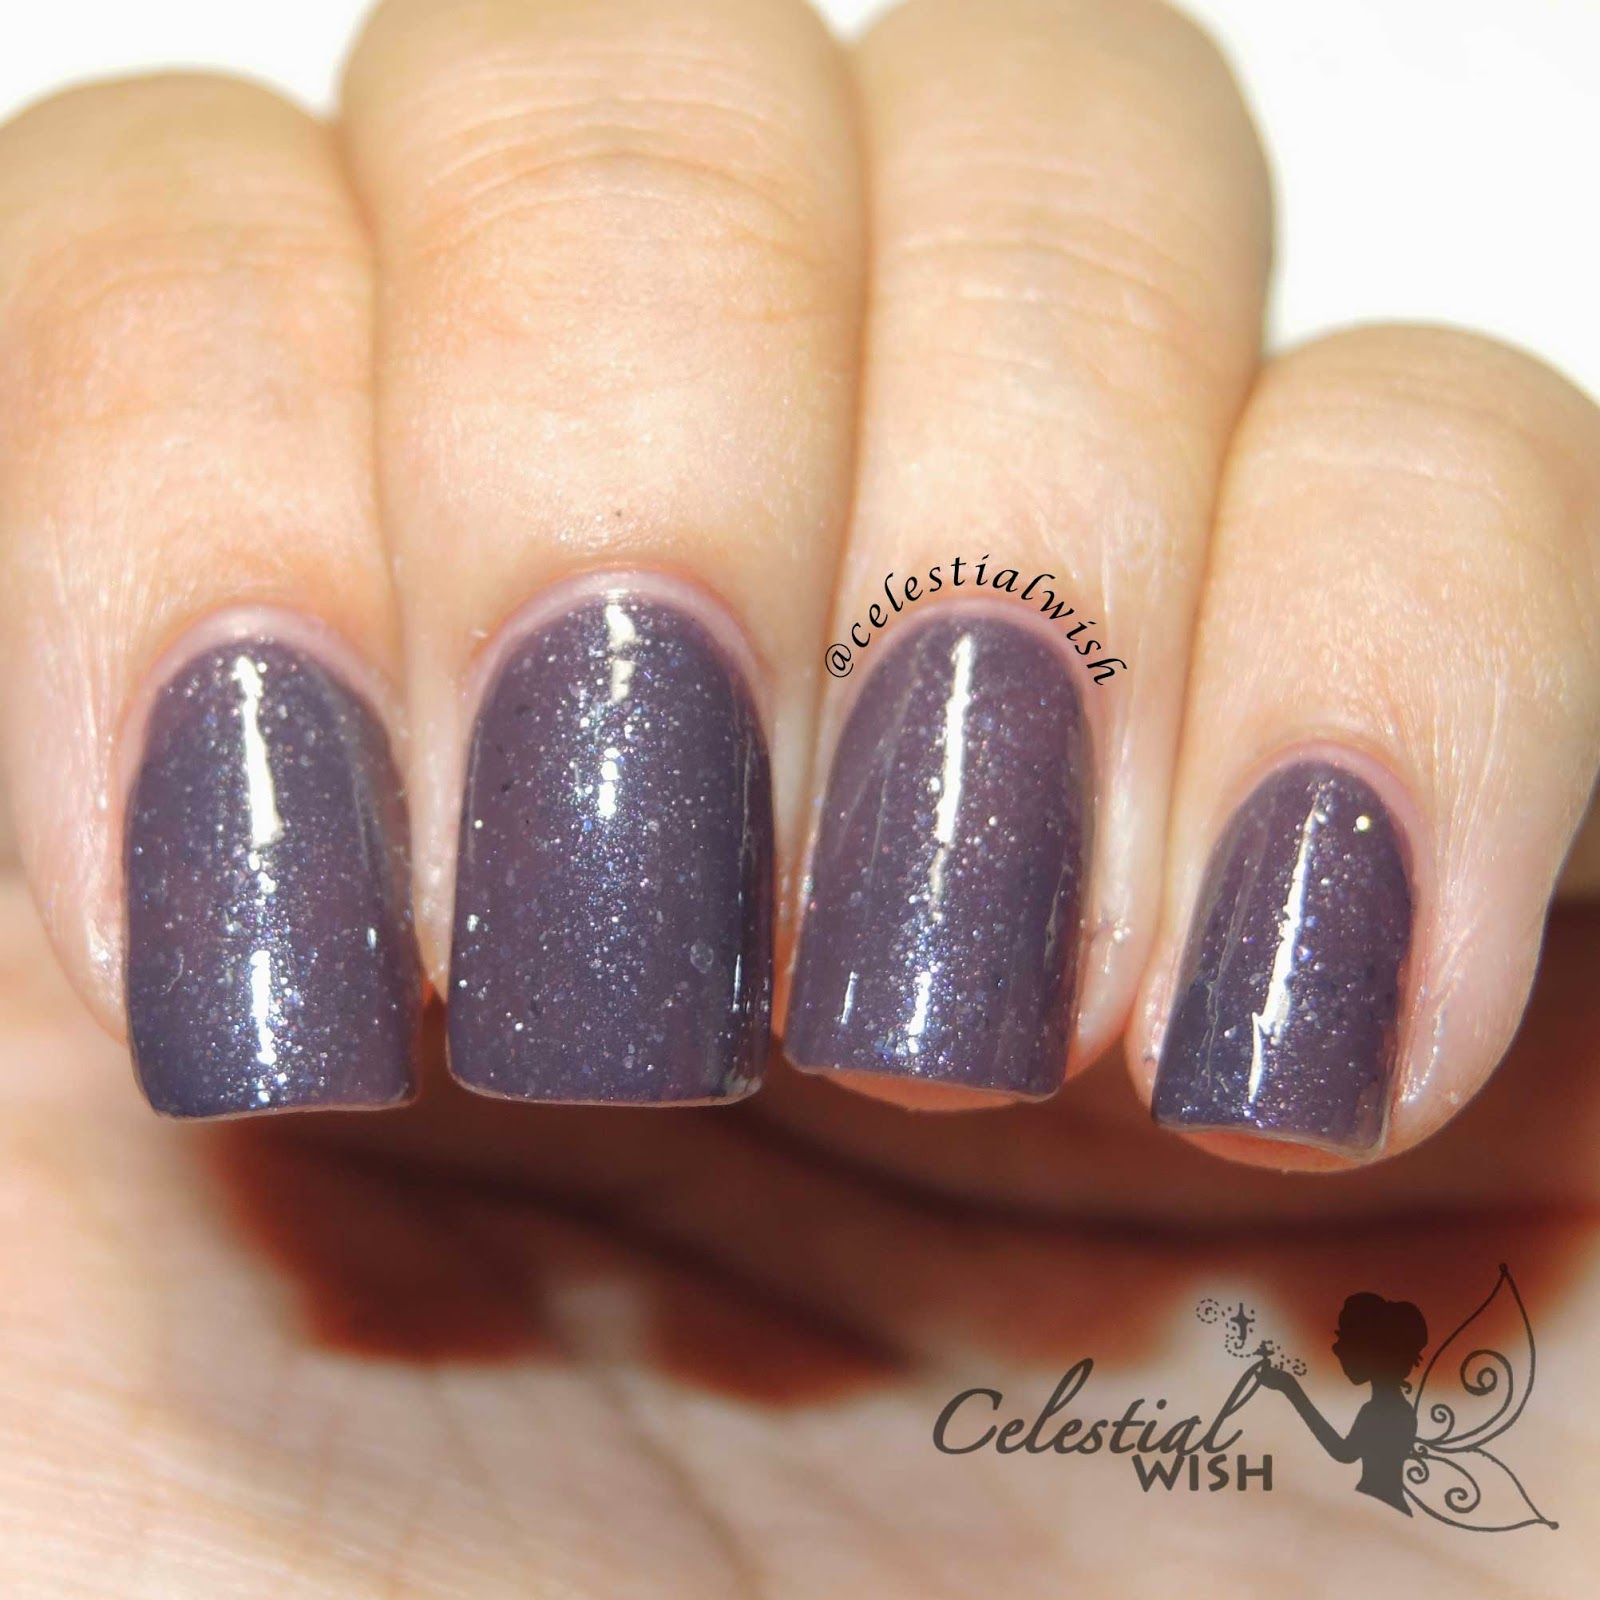 Northern Star Polish's Mullberry